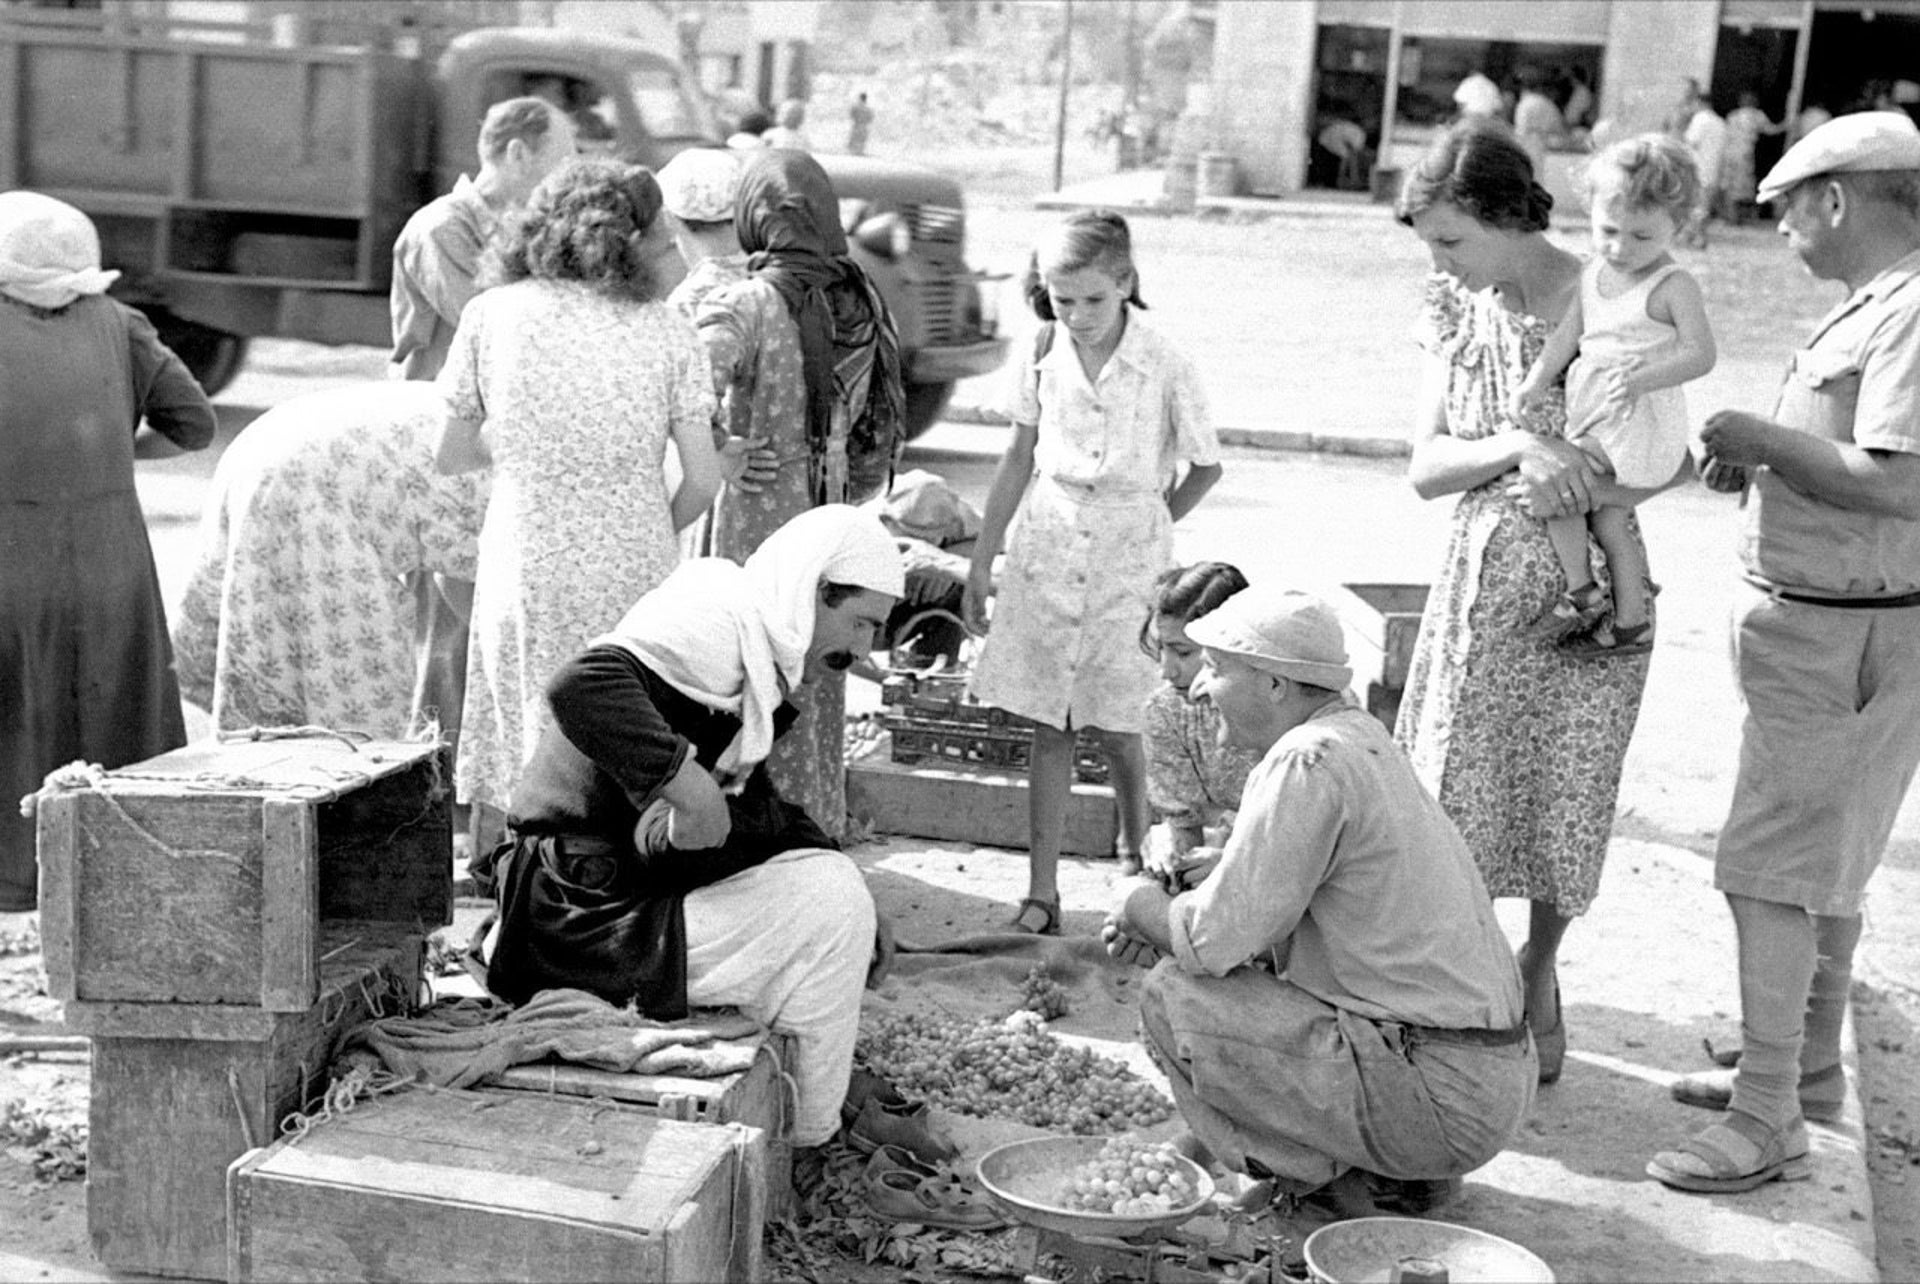 Arabs and Jews mingling at a market in Tiberias (date unknown).